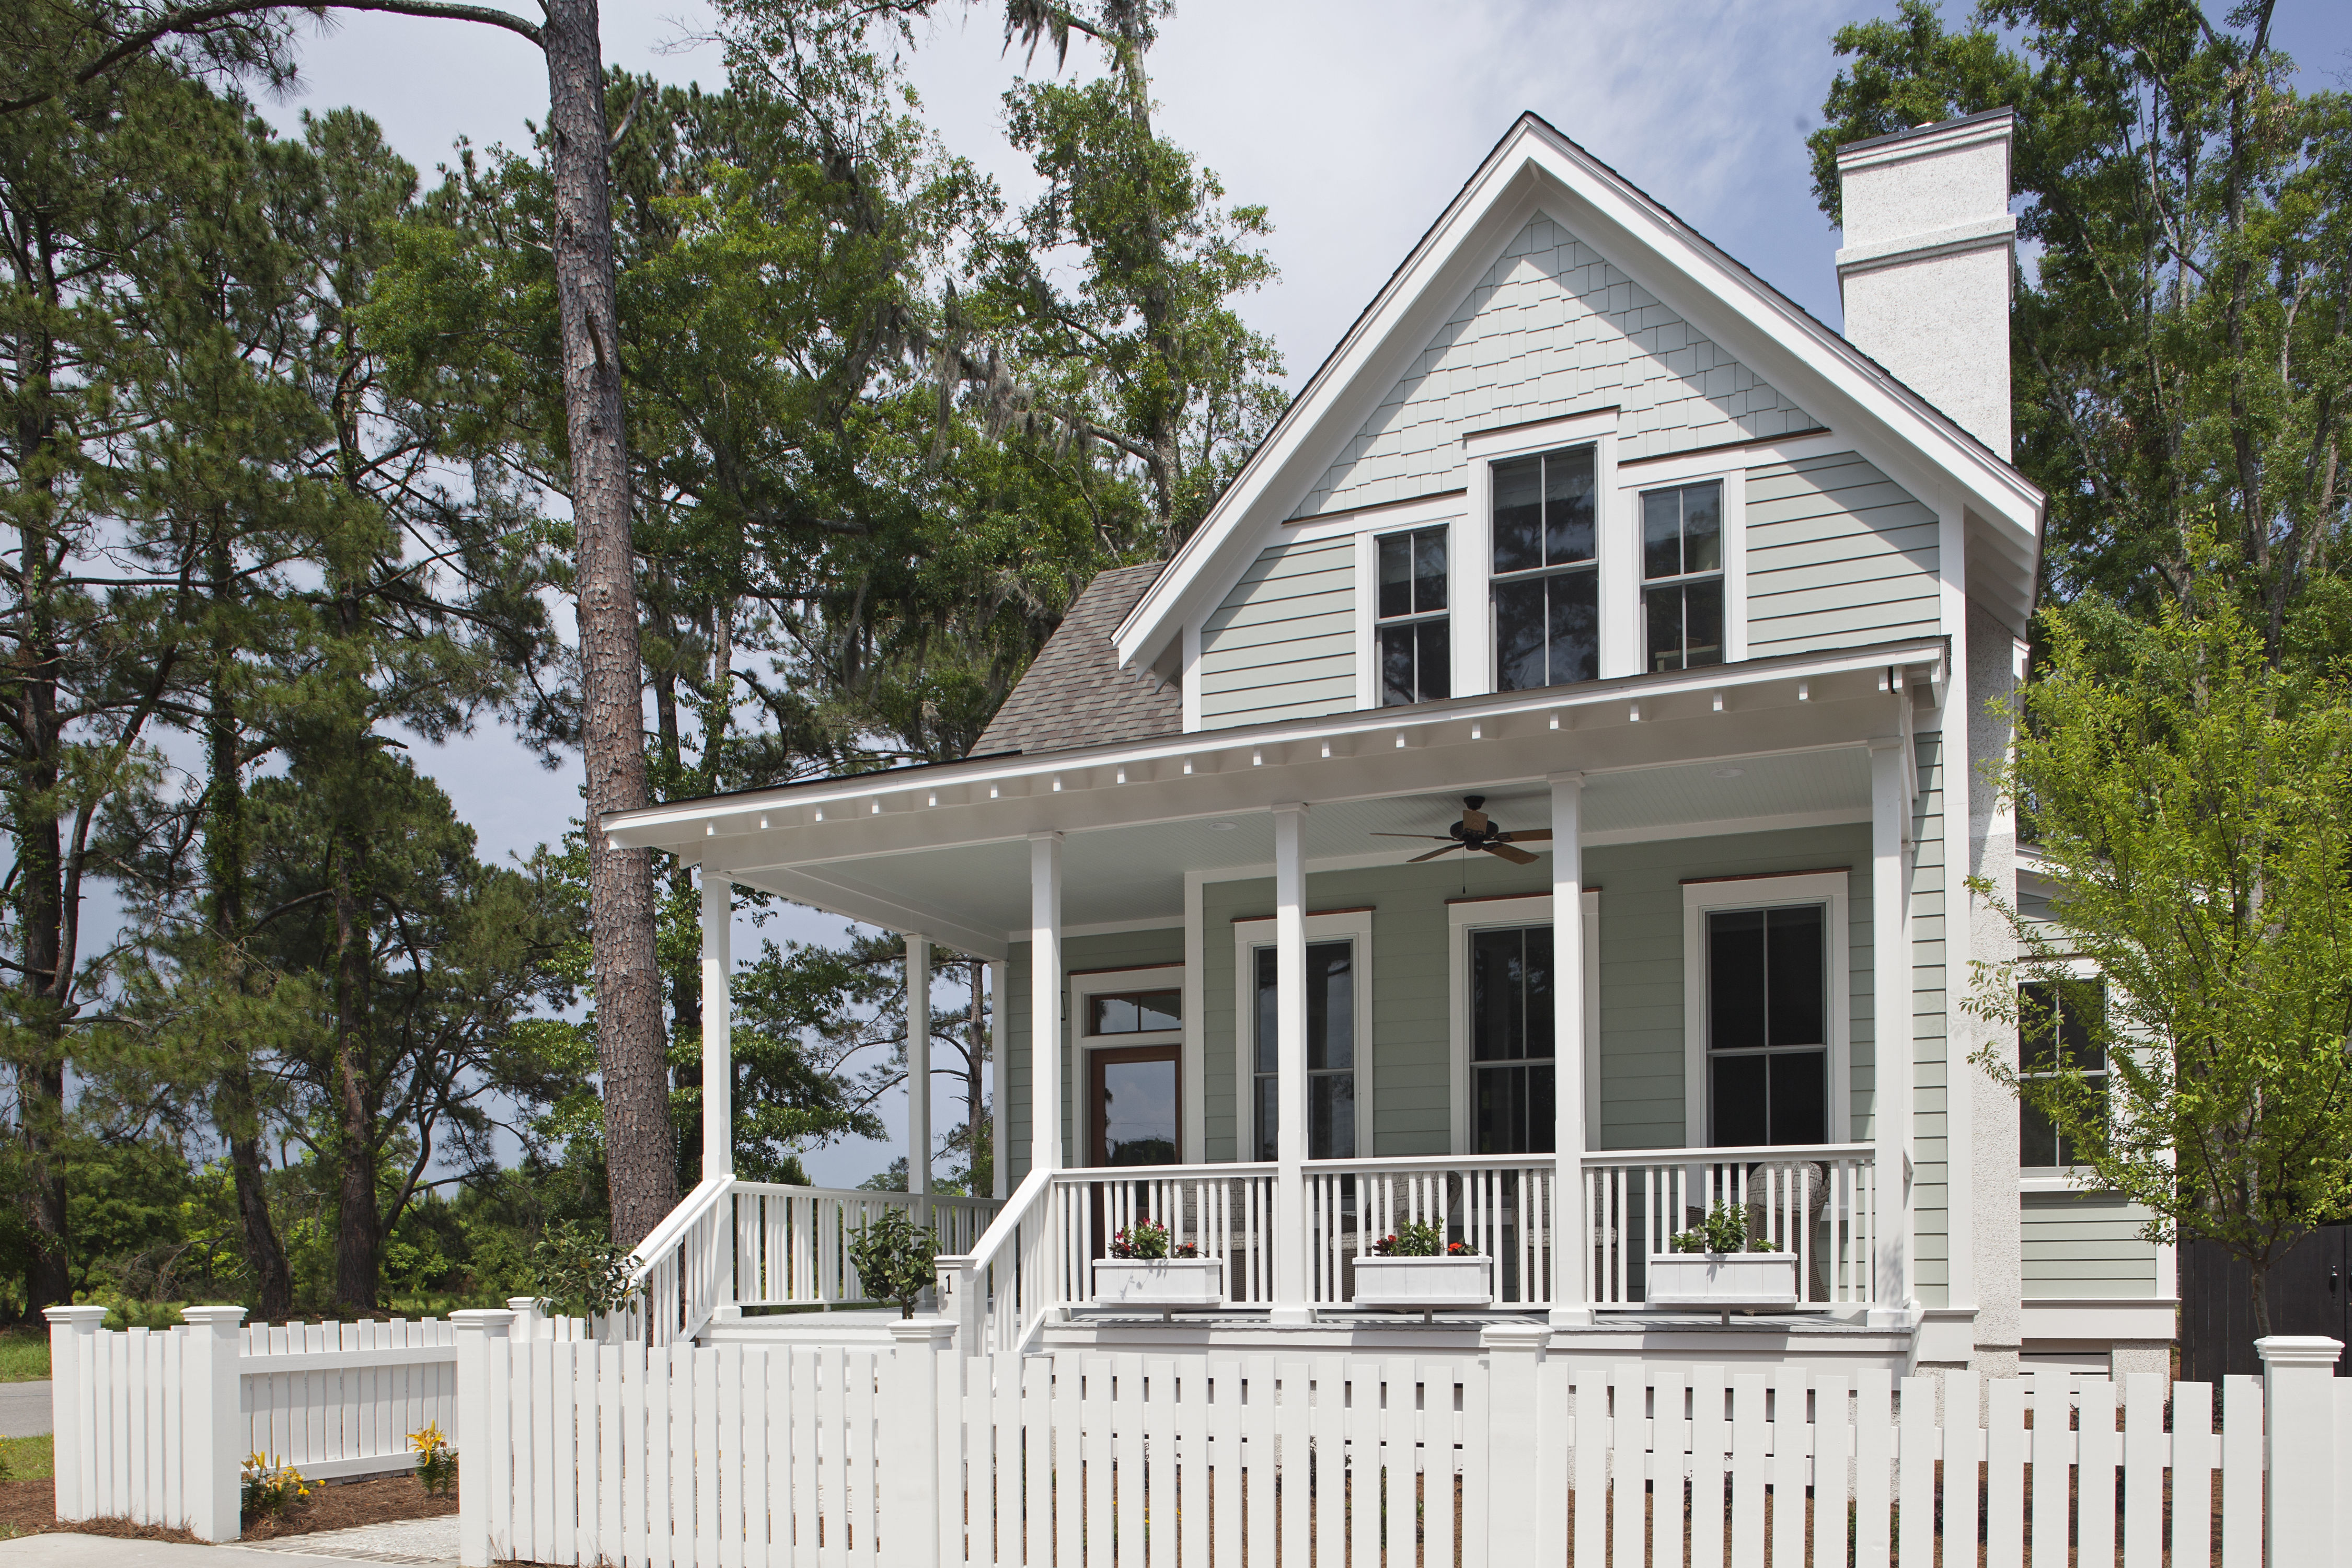 Meet the Designer: The Southern Living Inspired Home